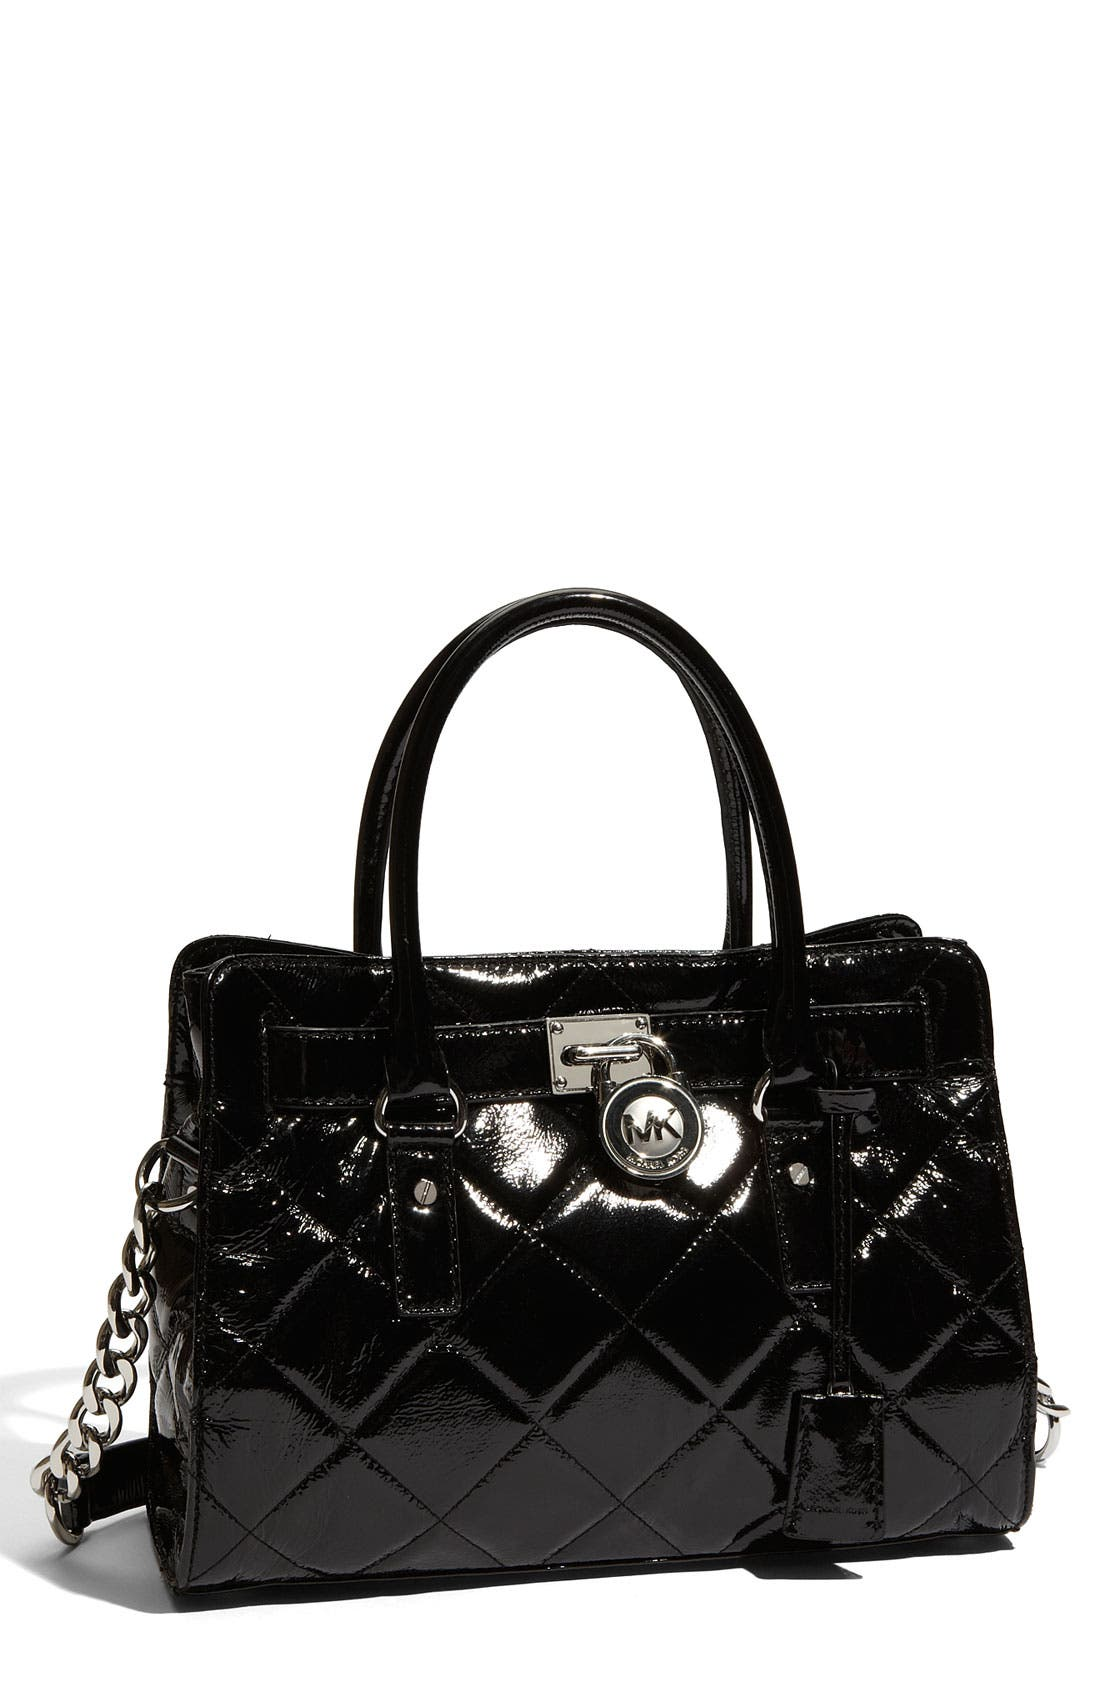 Alternate Image 1 Selected - MICHAEL Michael Kors 'Hamilton' Quilted Leather Satchel